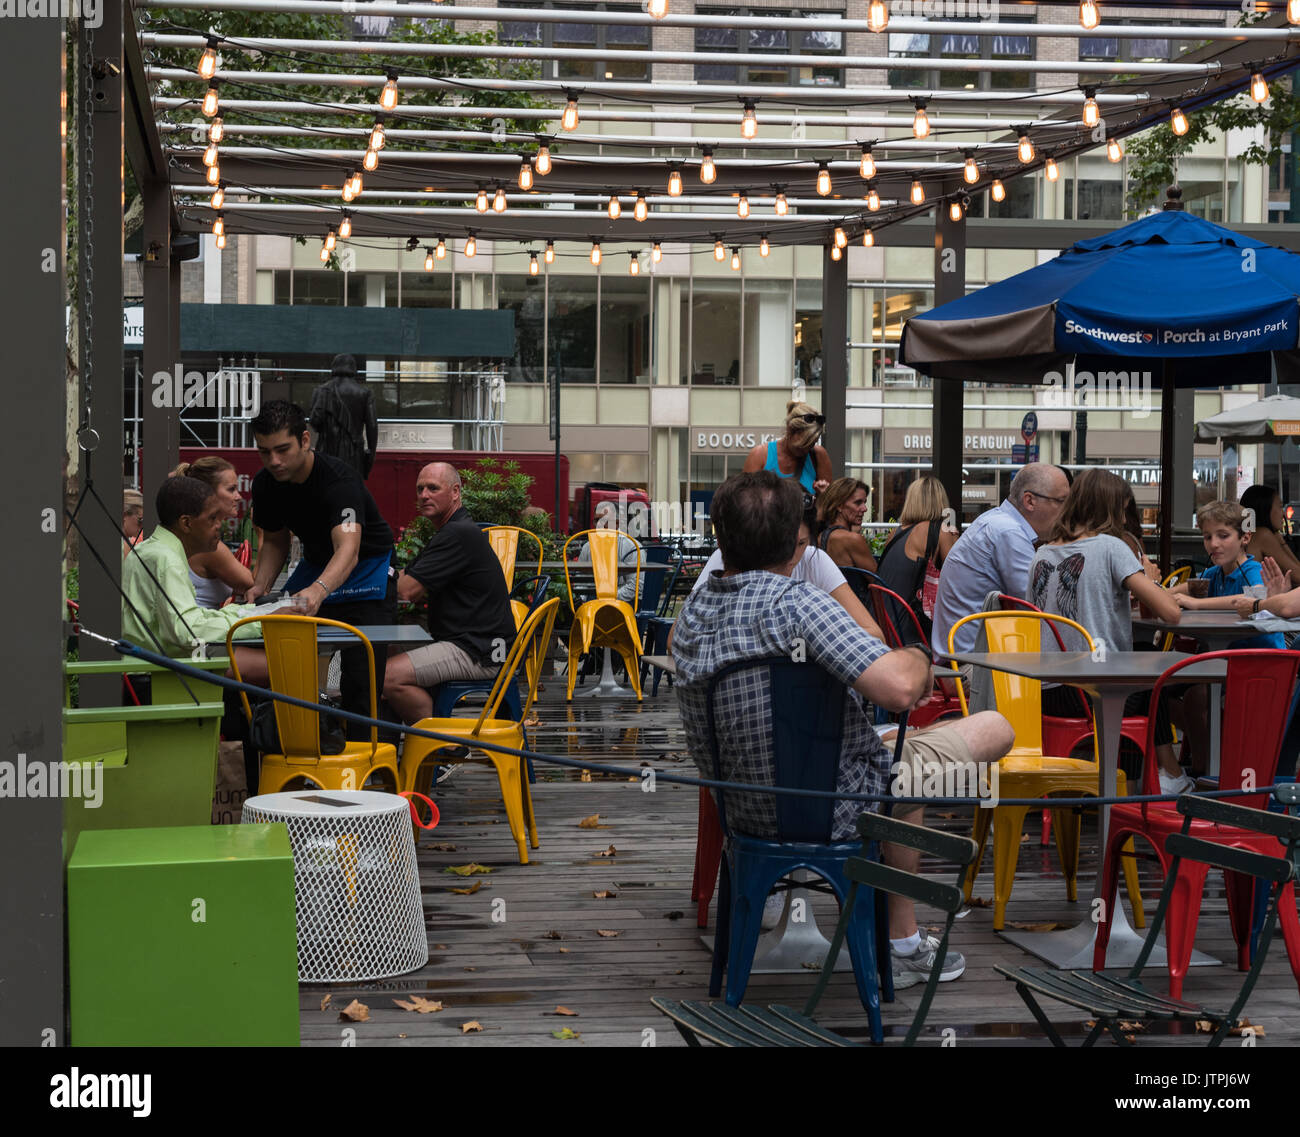 Friends and families gather for snacks and conversation at an outdoor cafe in Bryant Park, New York City. Editorial Use Only. - Stock Image